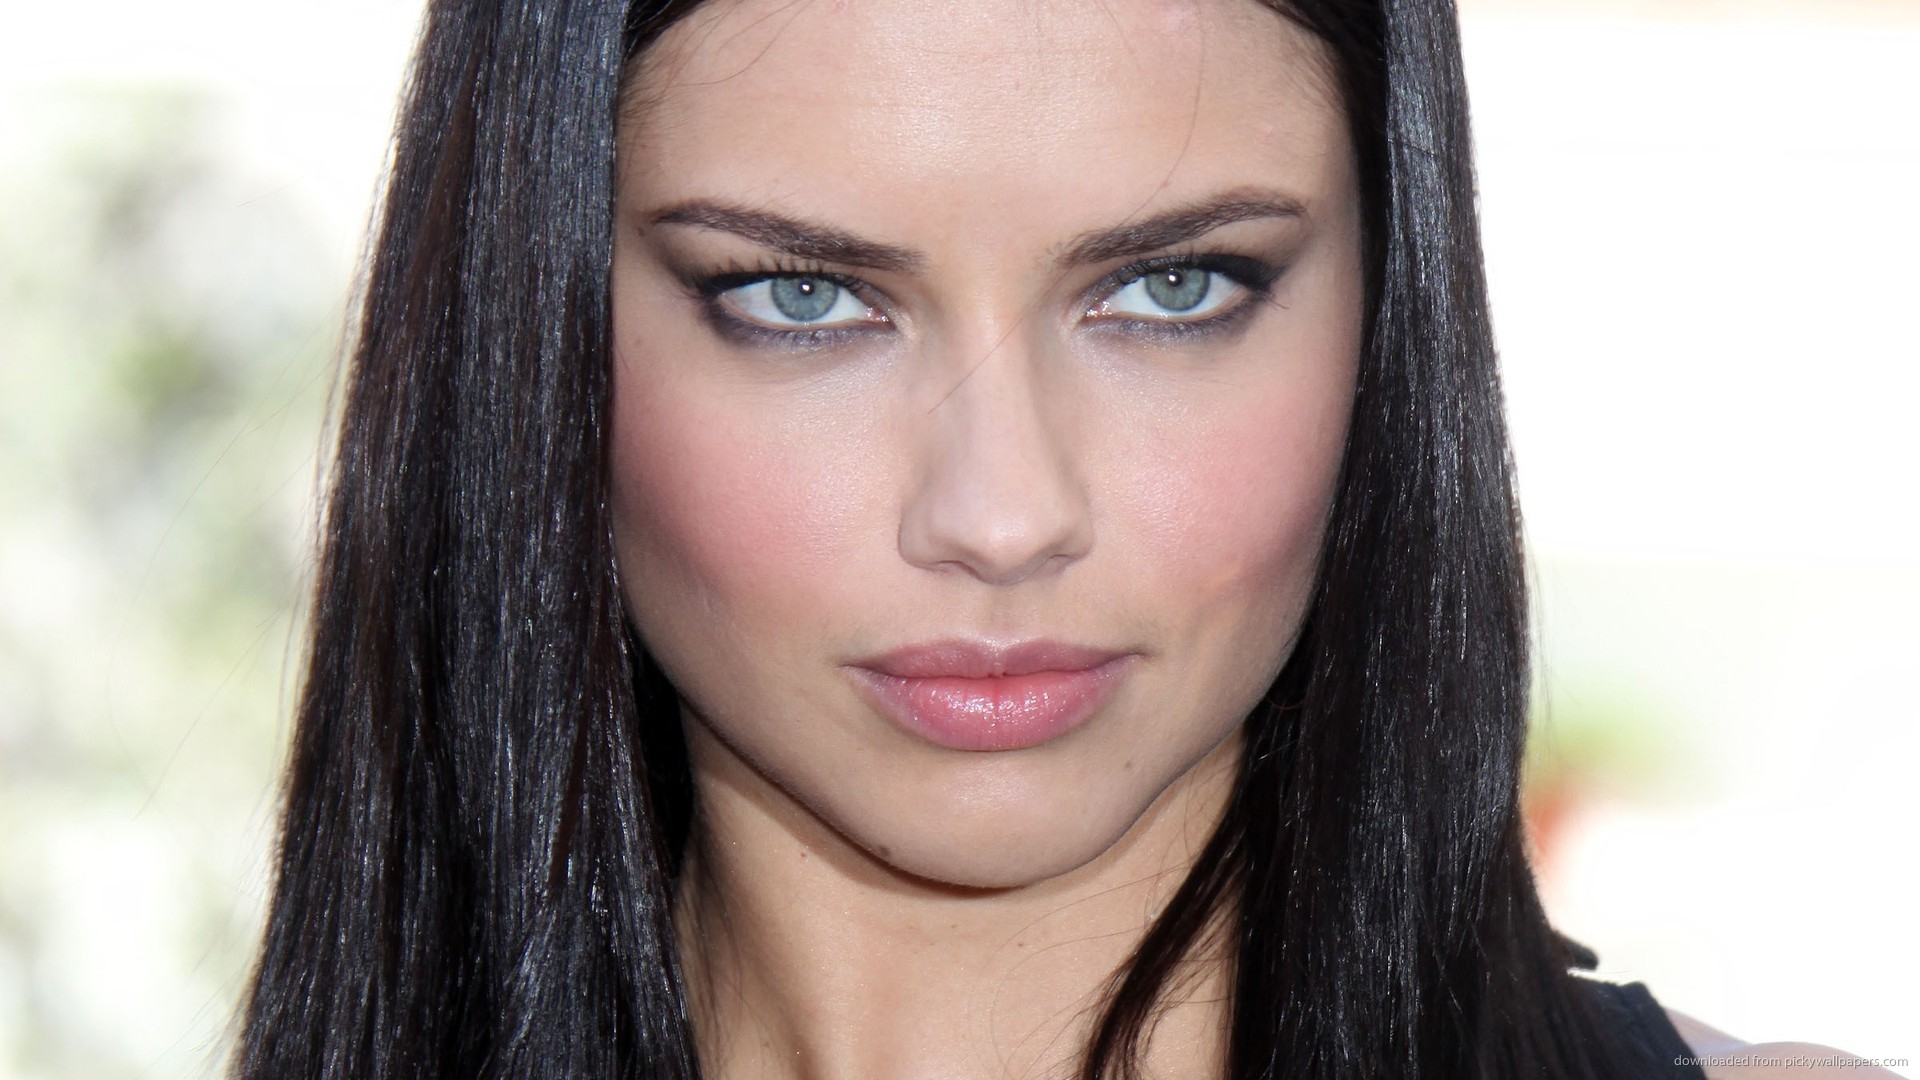 Adriana lima wallpaper hd wallpapermonkey adriana lima hd wallpaper adriana lima wallpaper hd wallpapermonkey adriana lima hd wallpaper cloudpix 1920x1080 voltagebd Images